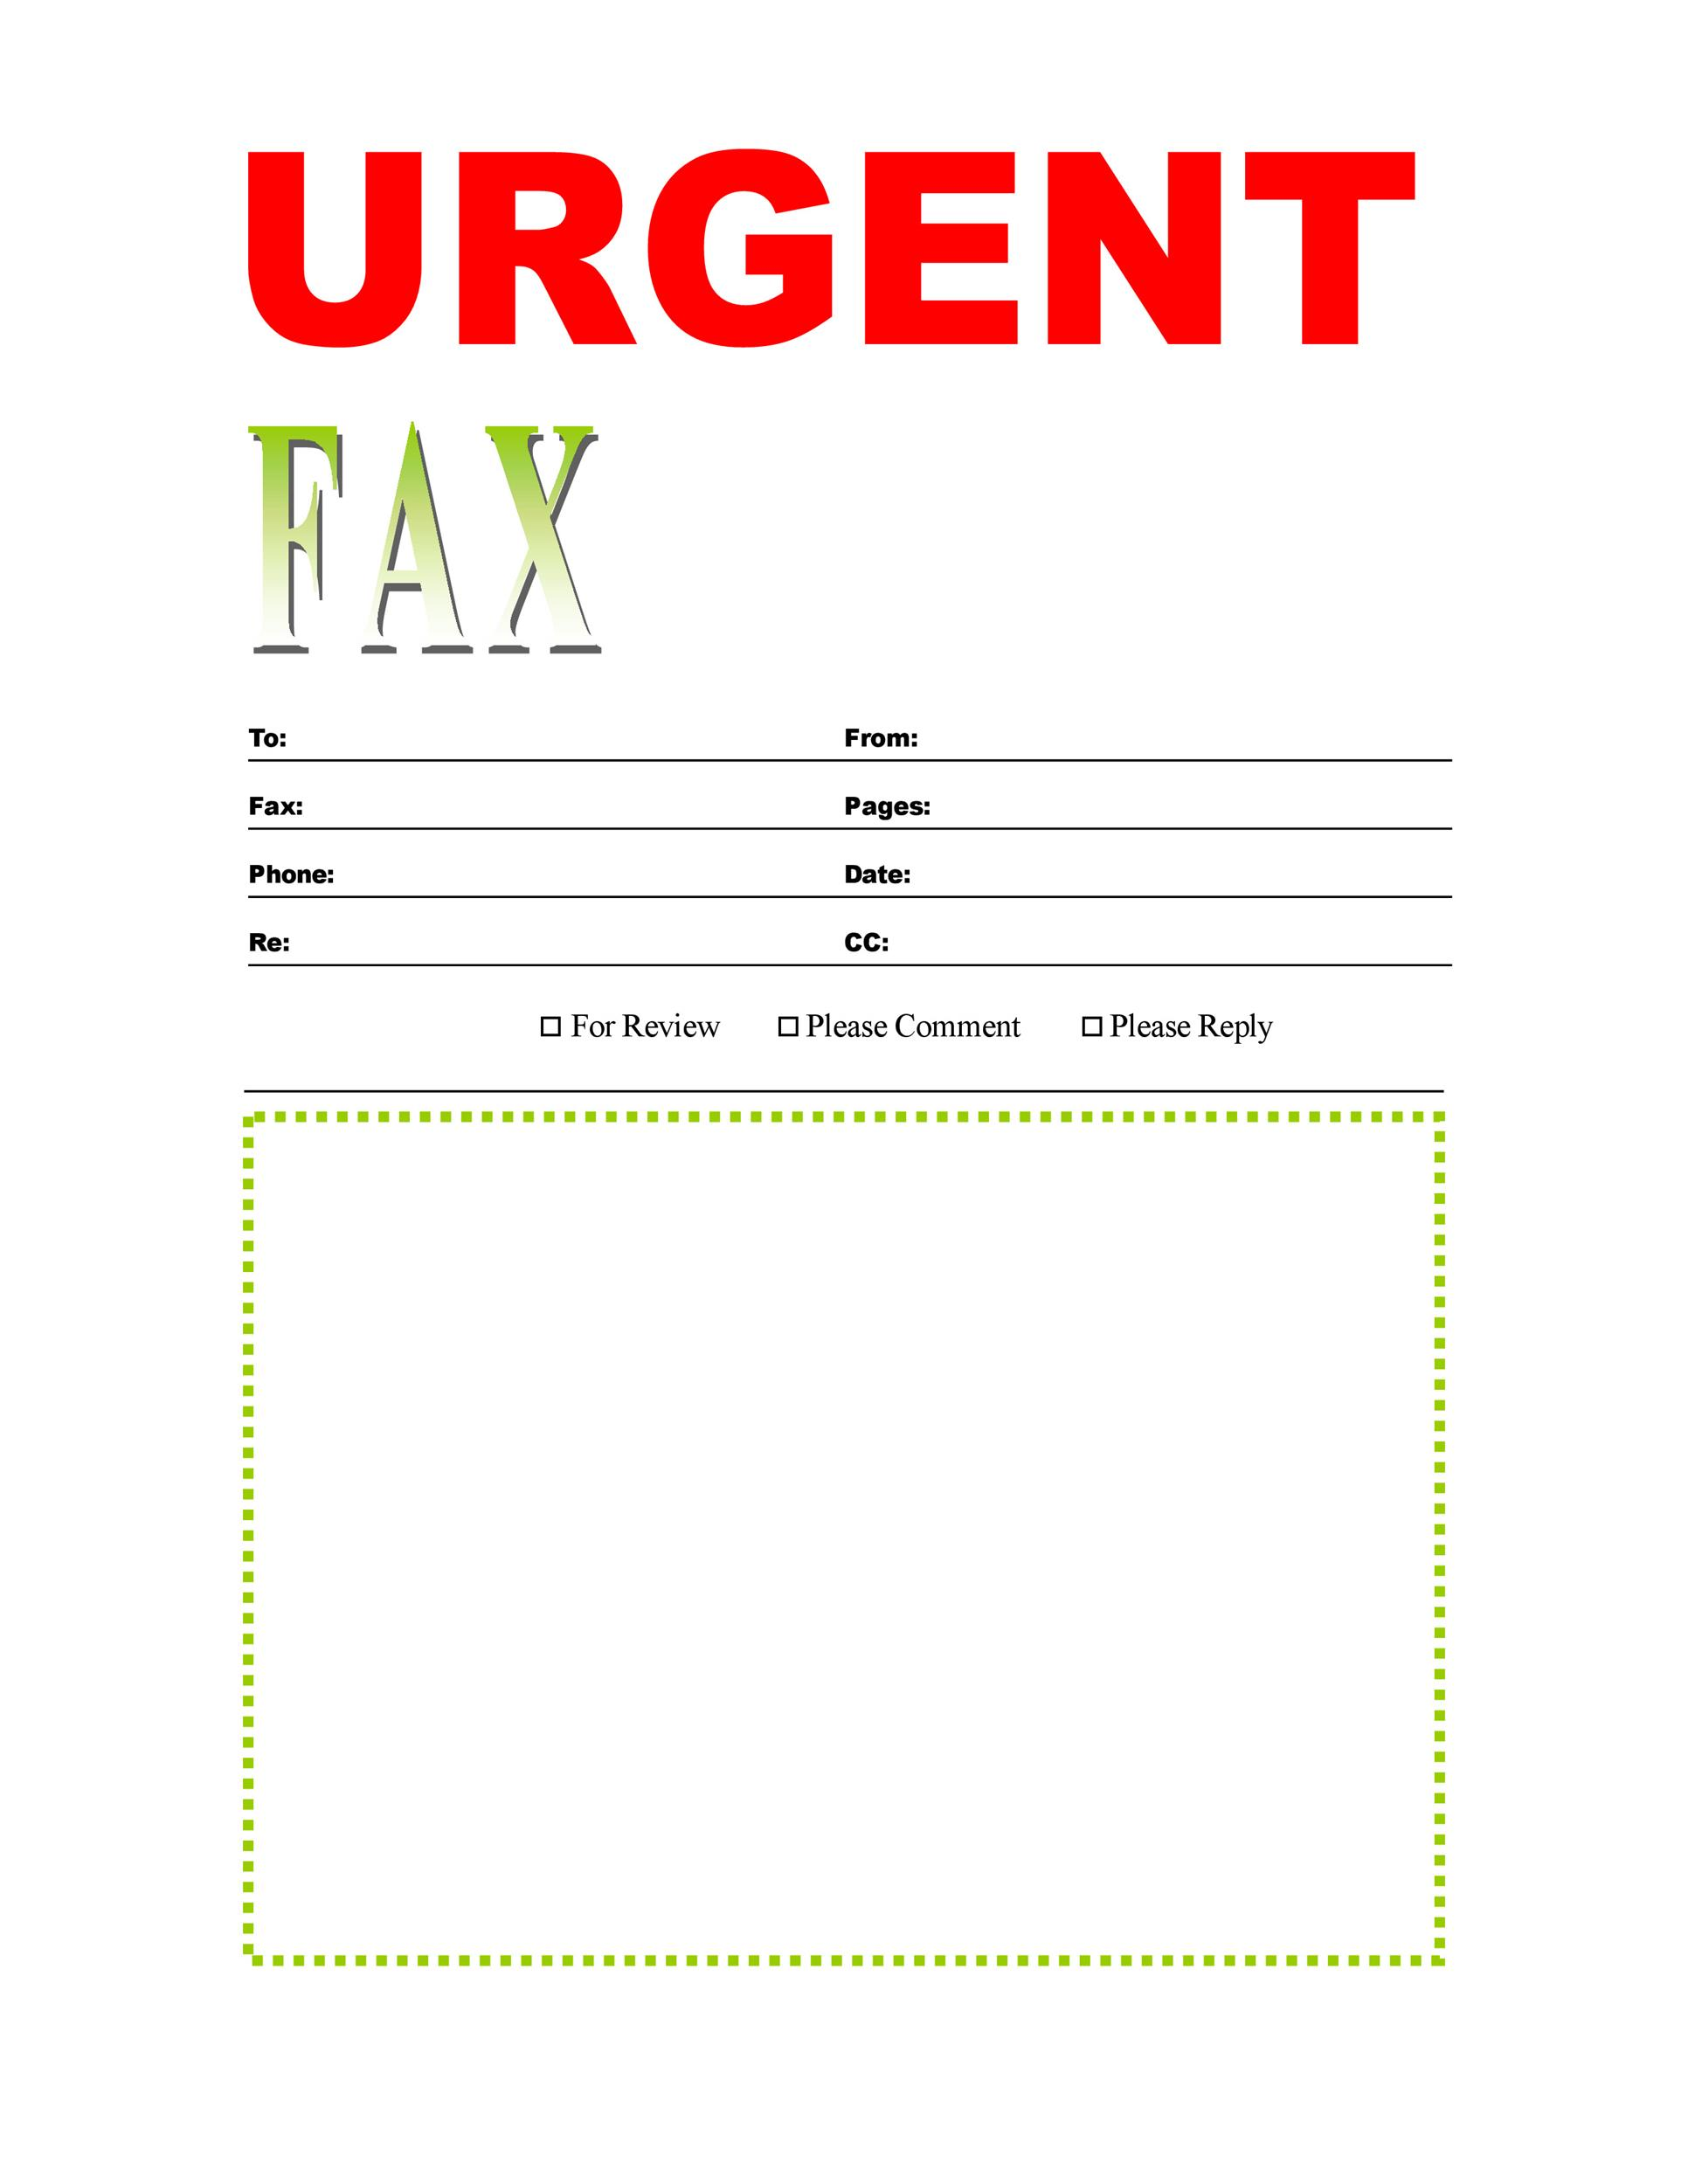 Printable Fax Cover Sheet Template 08  Fax Template Free